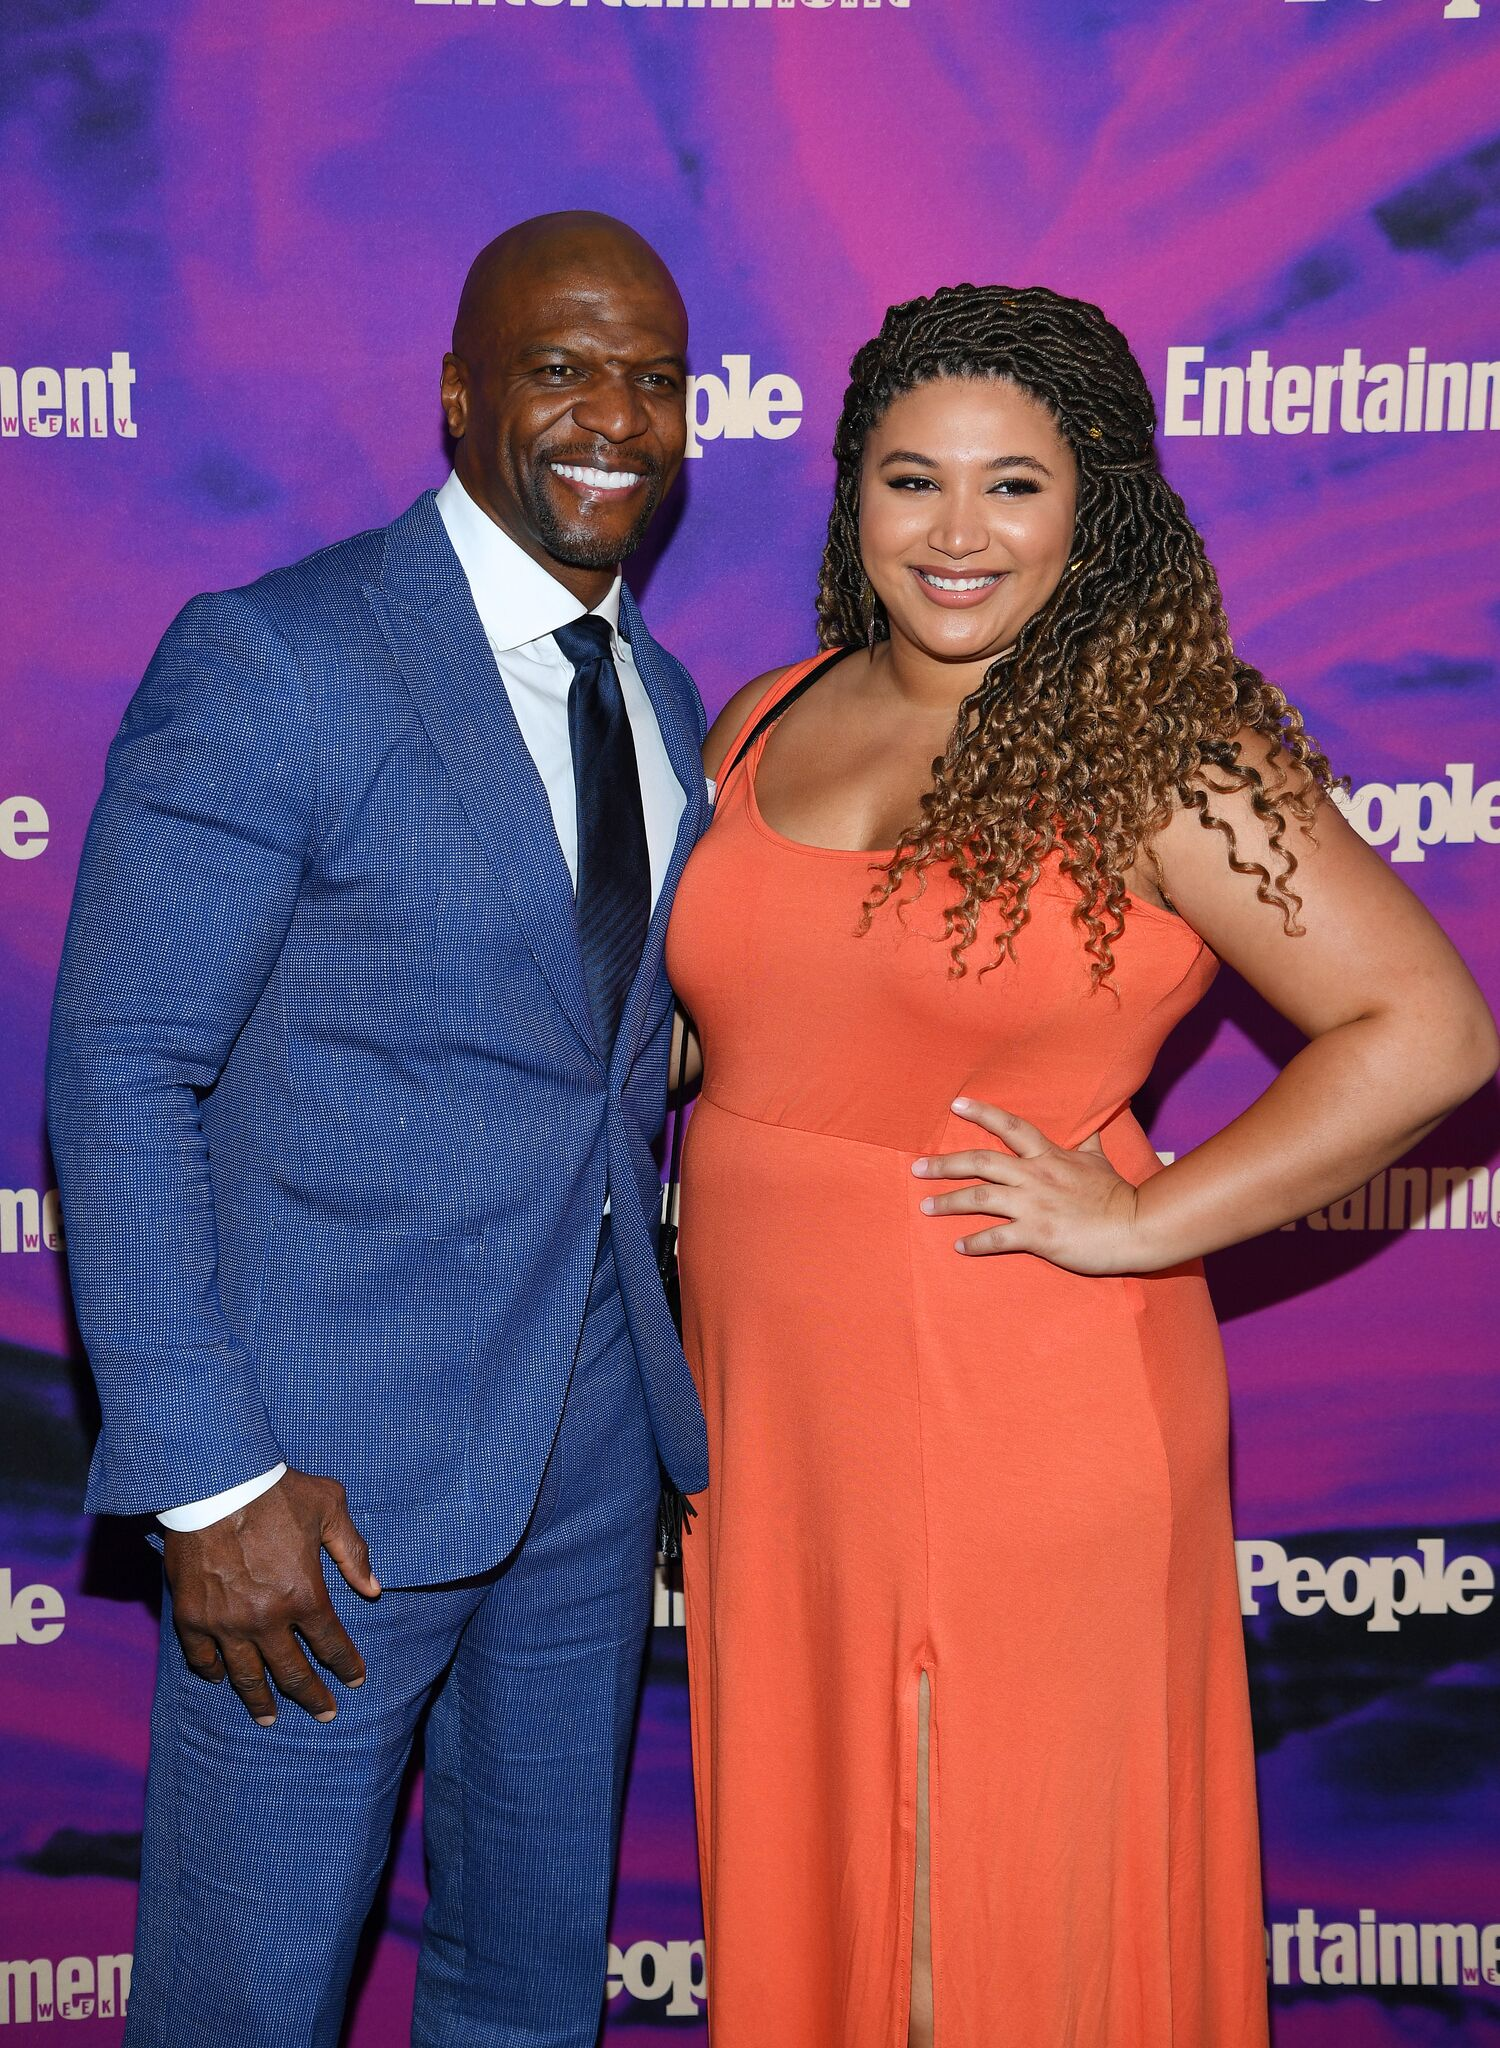 Terry Crews and Azriel Crews attend the Entertainment Weekly & PEOPLE New York Upfronts Party on May 13, 2019 in New York City. | Getty Images